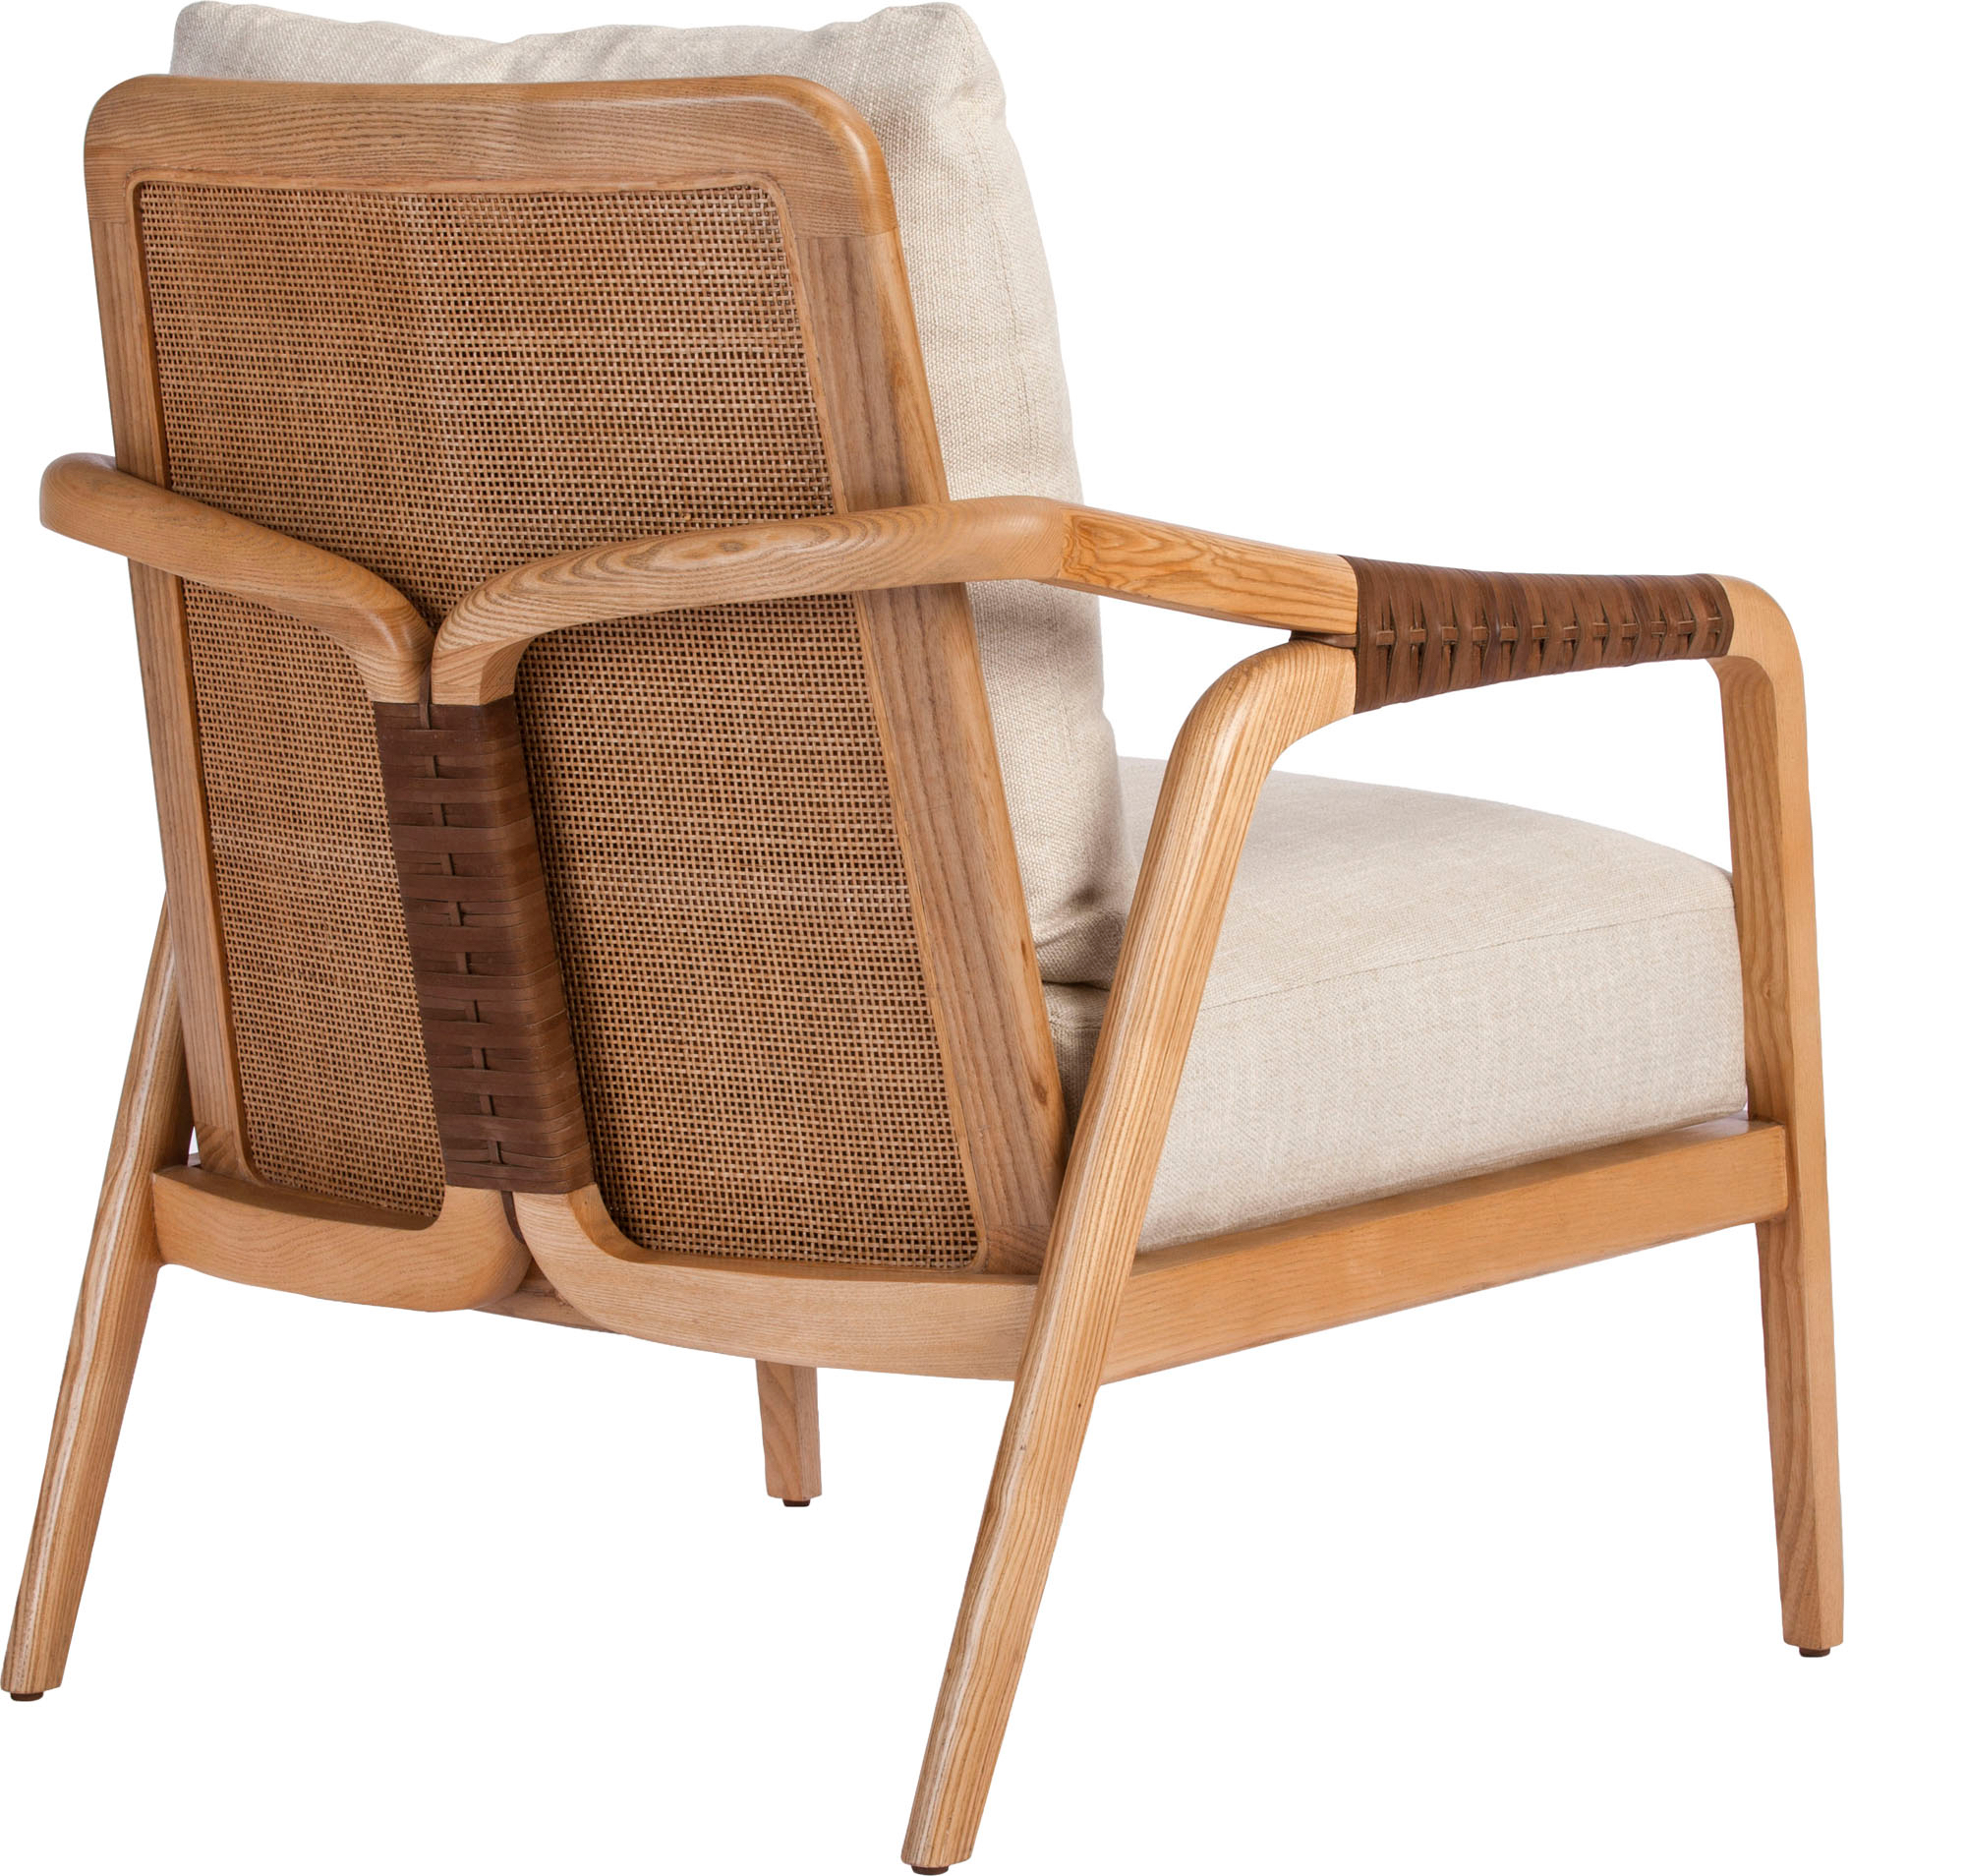 Knot Lounge Chair neocon 2021 padstyle.com